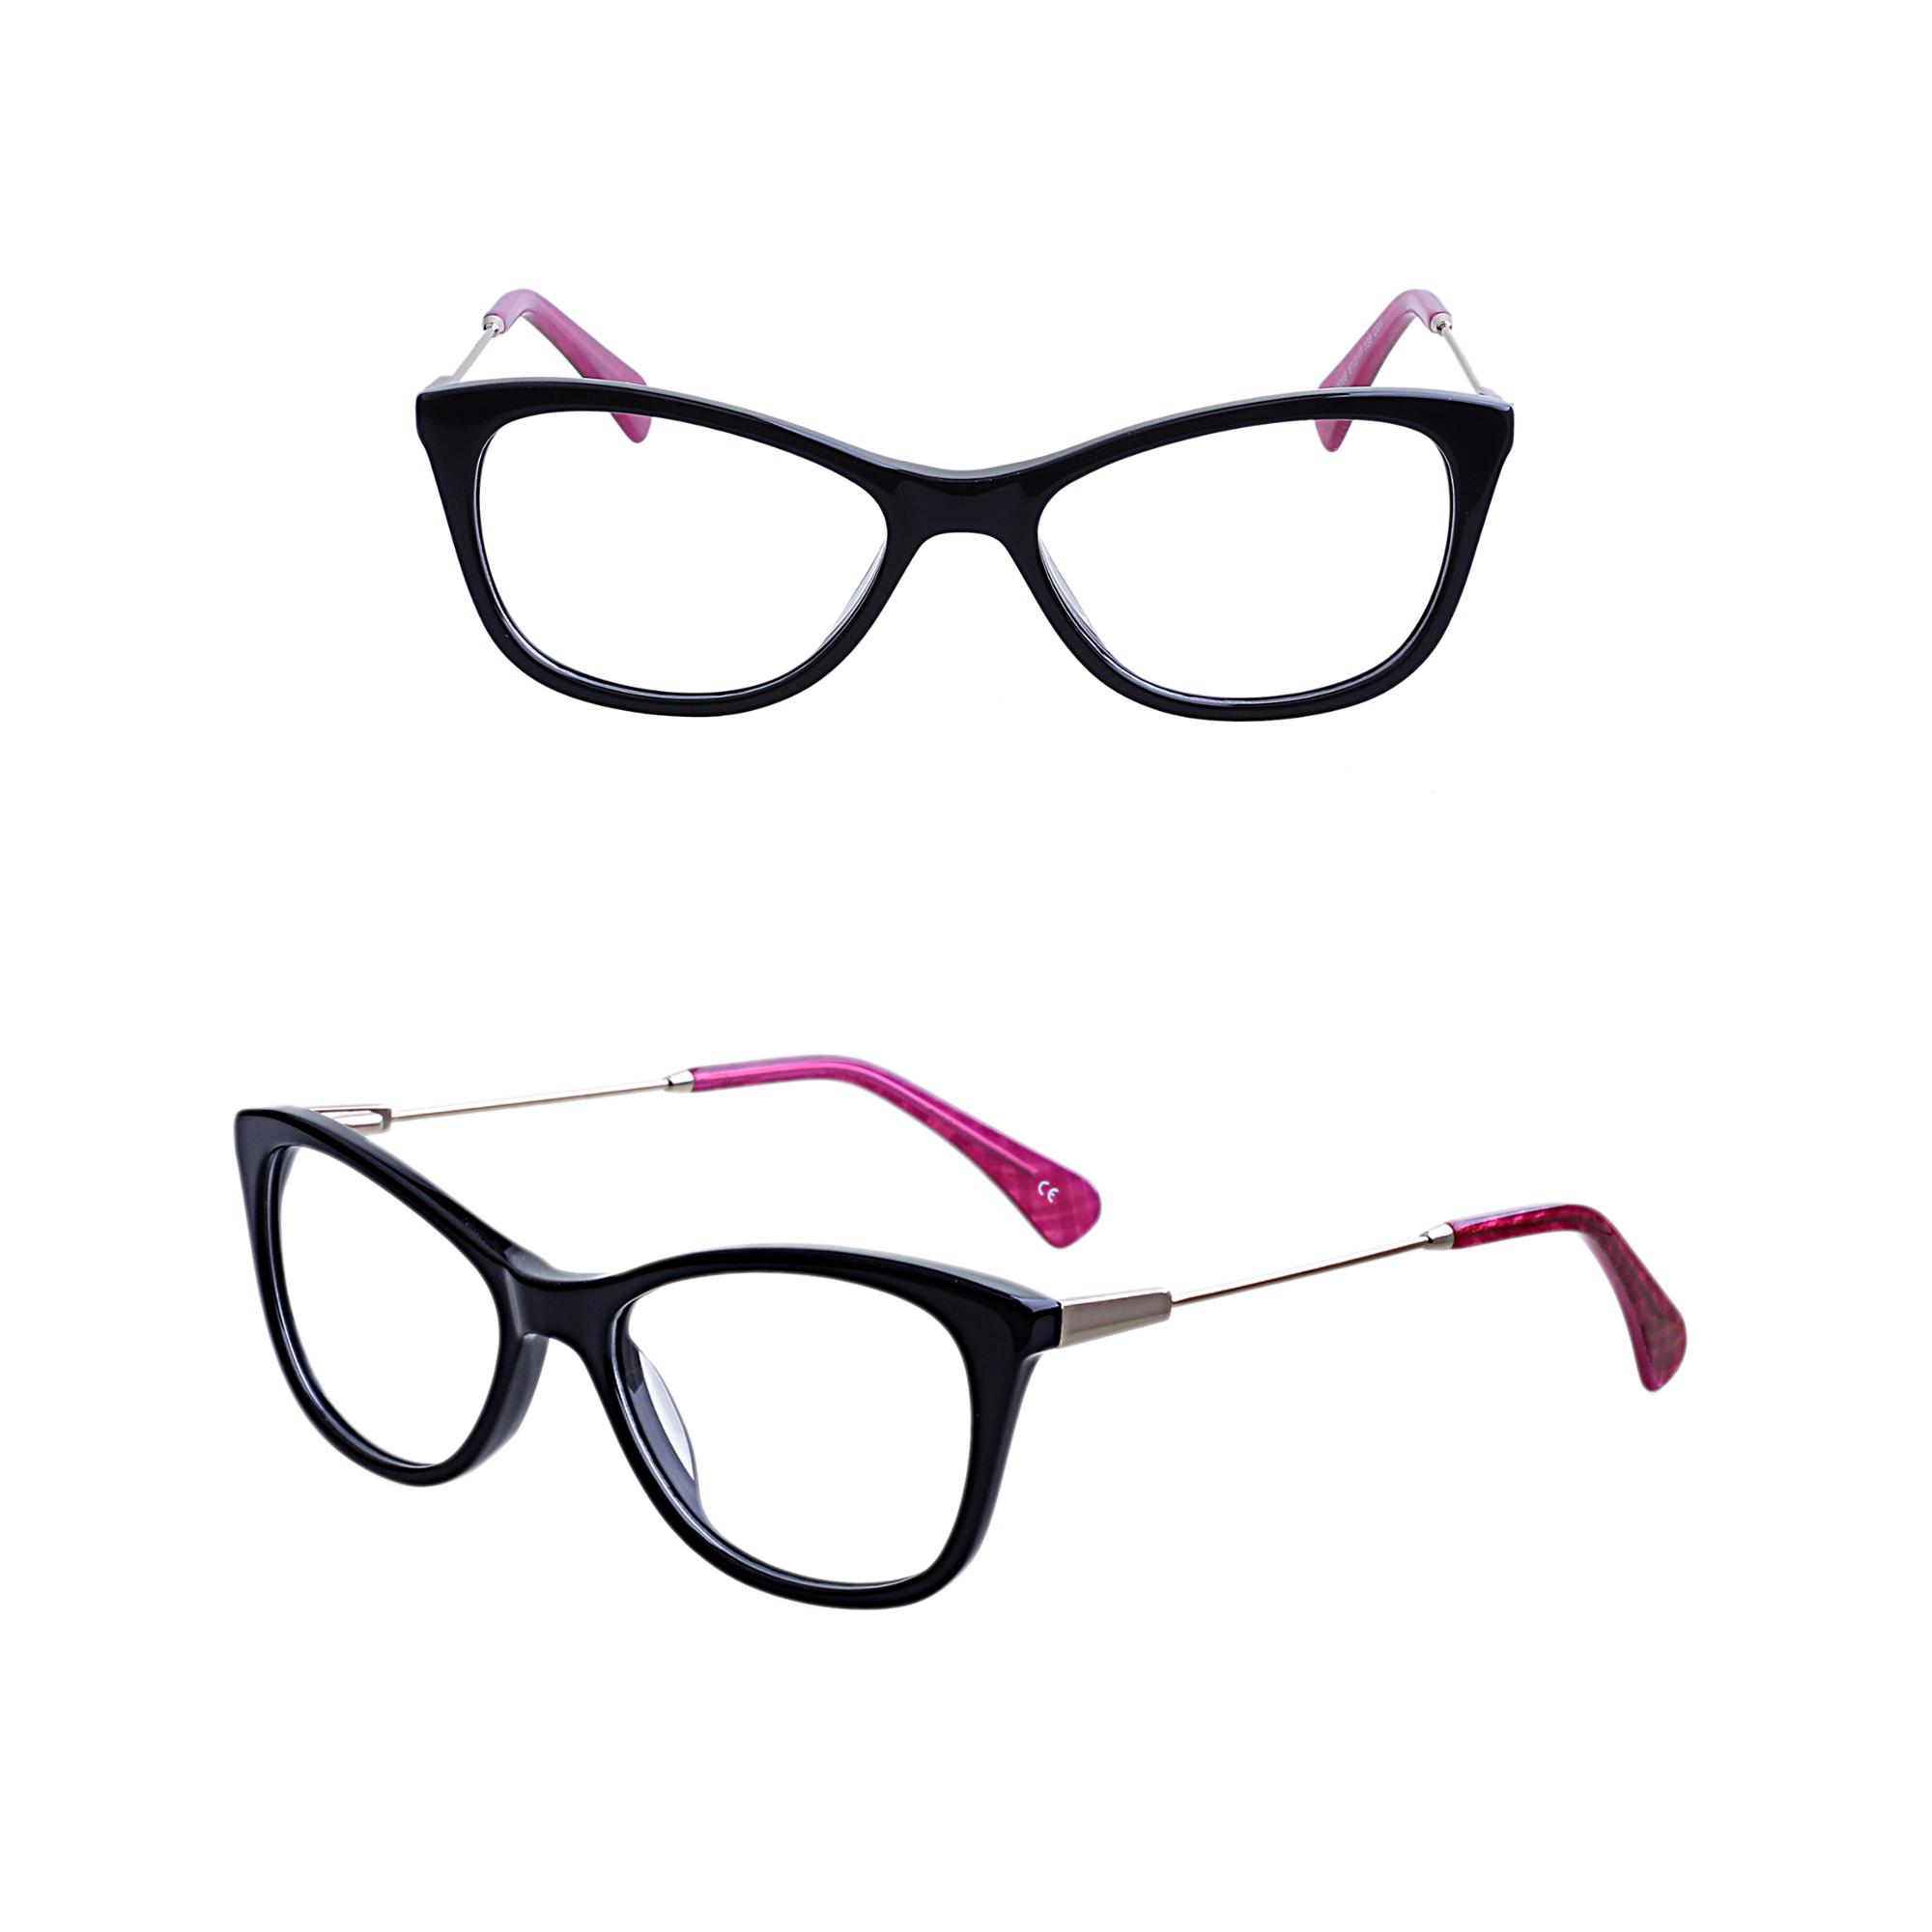 new arrivals 2018 acetate model optical frames manufacturers women eye glasses eyeglass frame in china